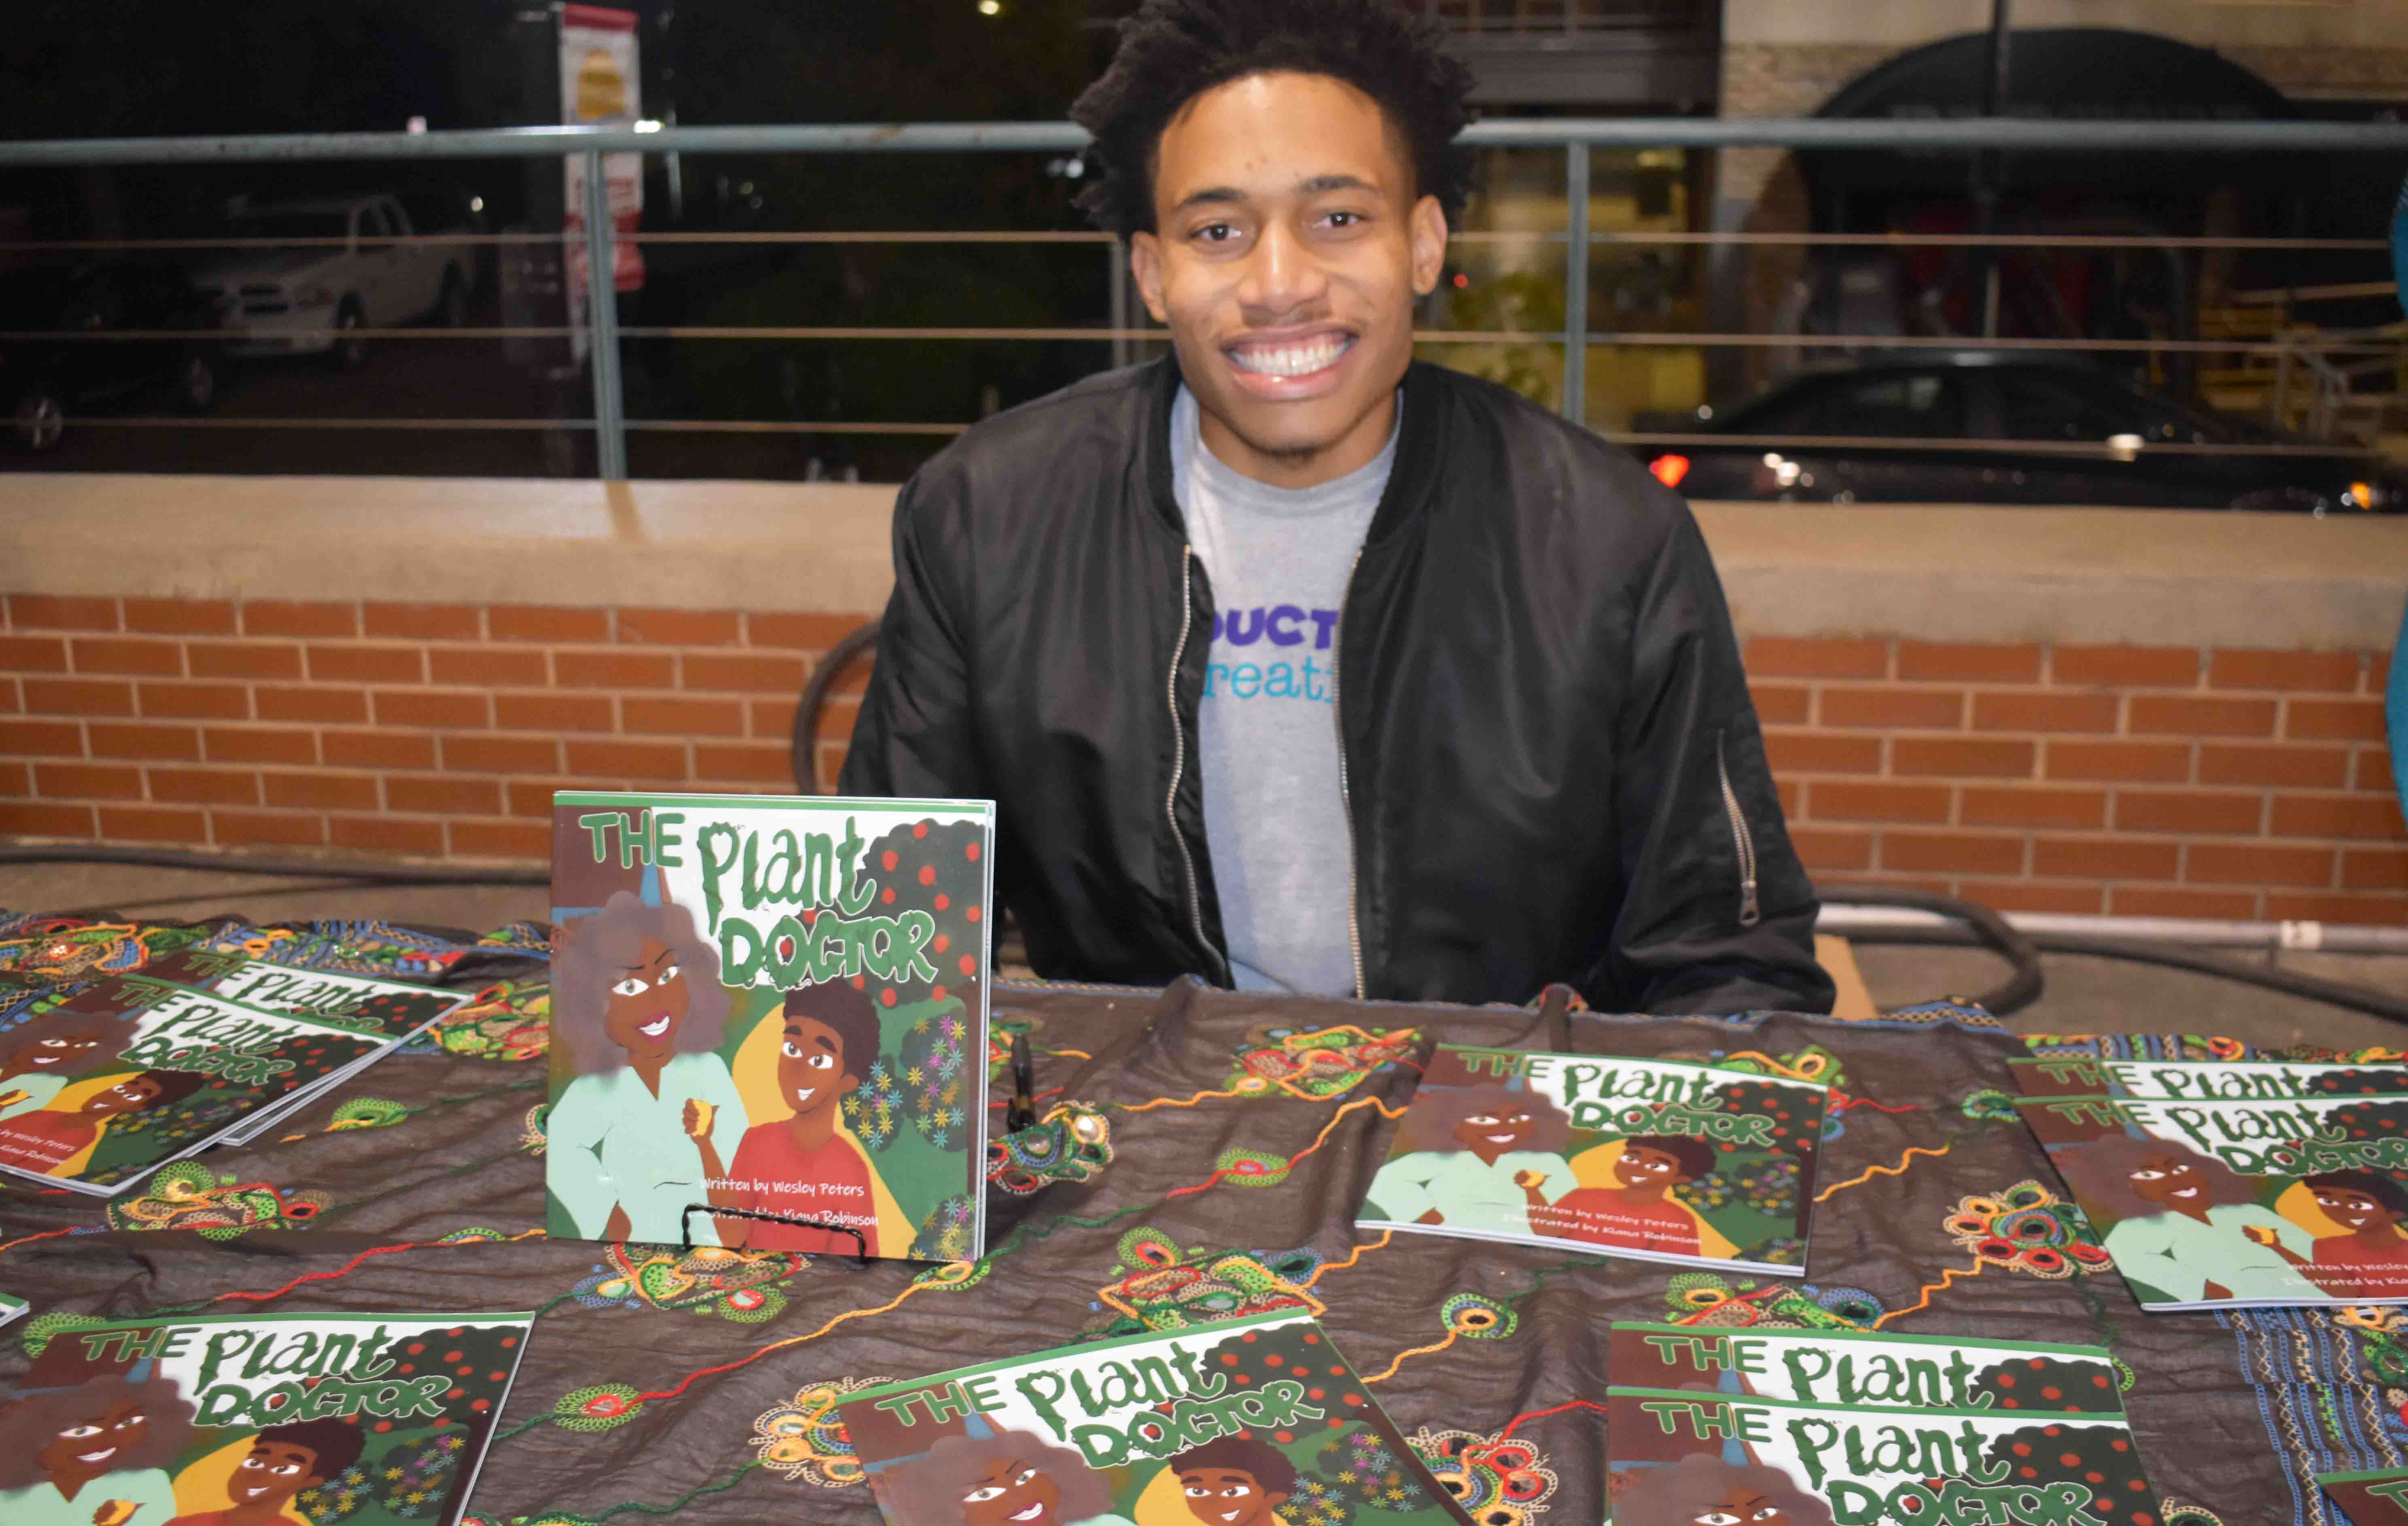 Wesley Peters (author, The Plant Doctor )